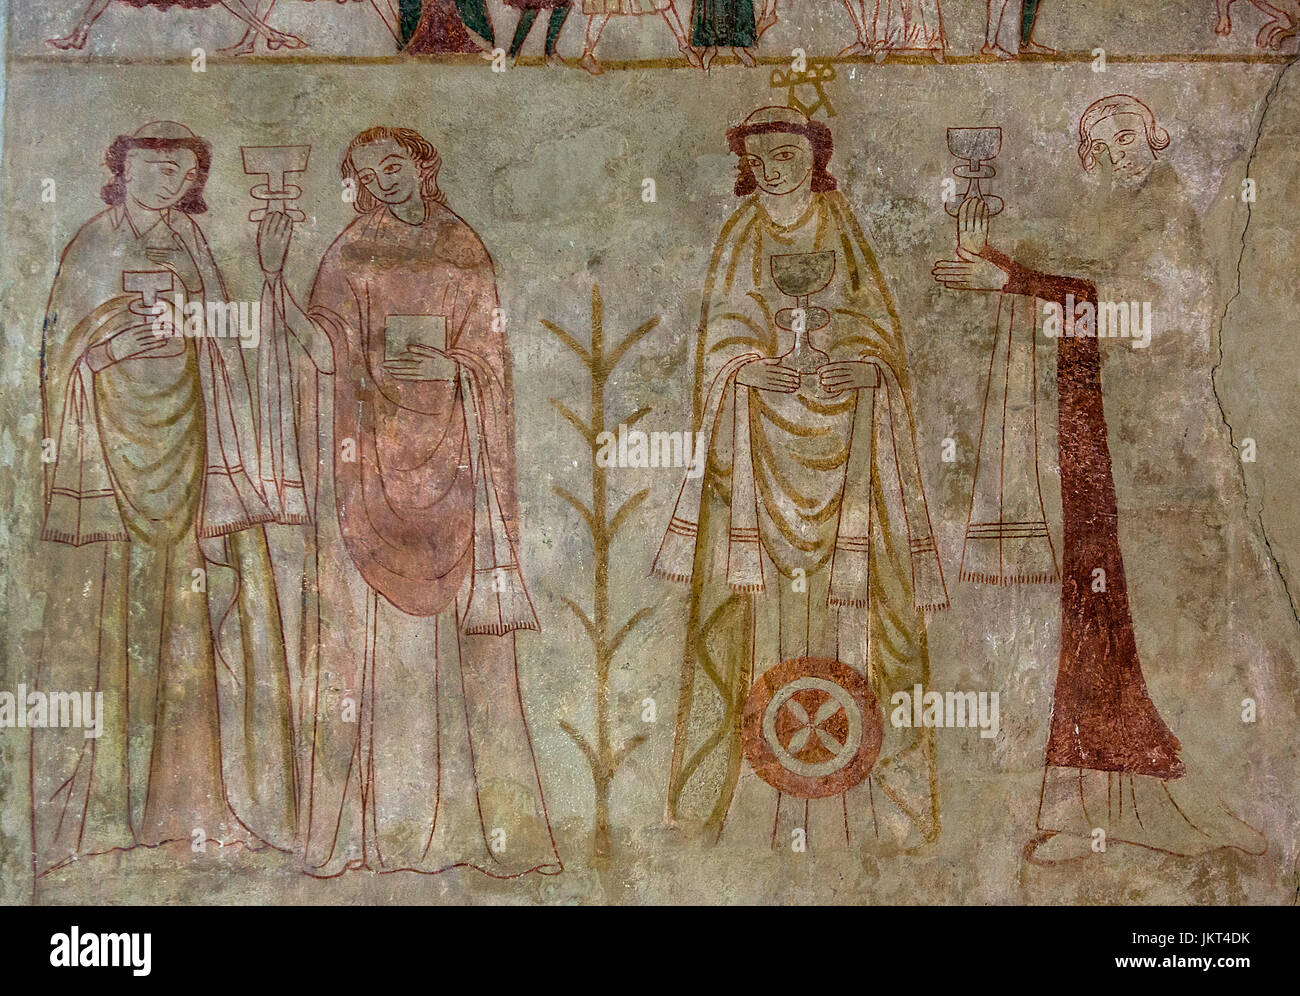 Danish medieval religious fresco from the 14th century in the Romanesque style Oerslev Church depicting apostles - Stock Image